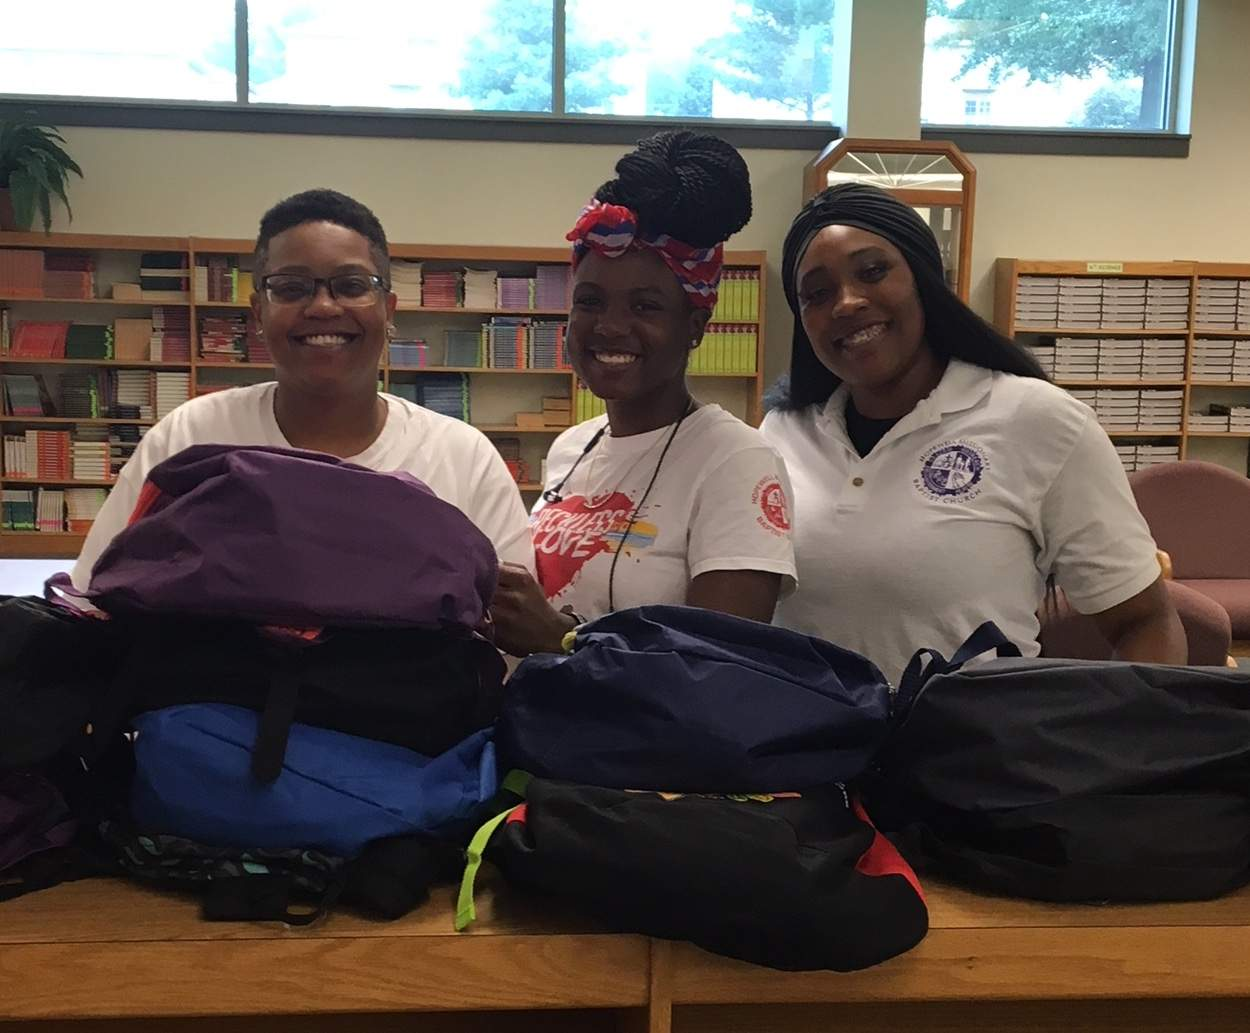 Photo submitted by the Rev. Chris Swims Toni Hughes, Ja'neraa Nelson and Alex Trigg, volunteers from Hopewell Missionary Baptist Church of Carbondale, gather Tuesday to pass out free backpacks and supplies to Carbondale Elementary School students.